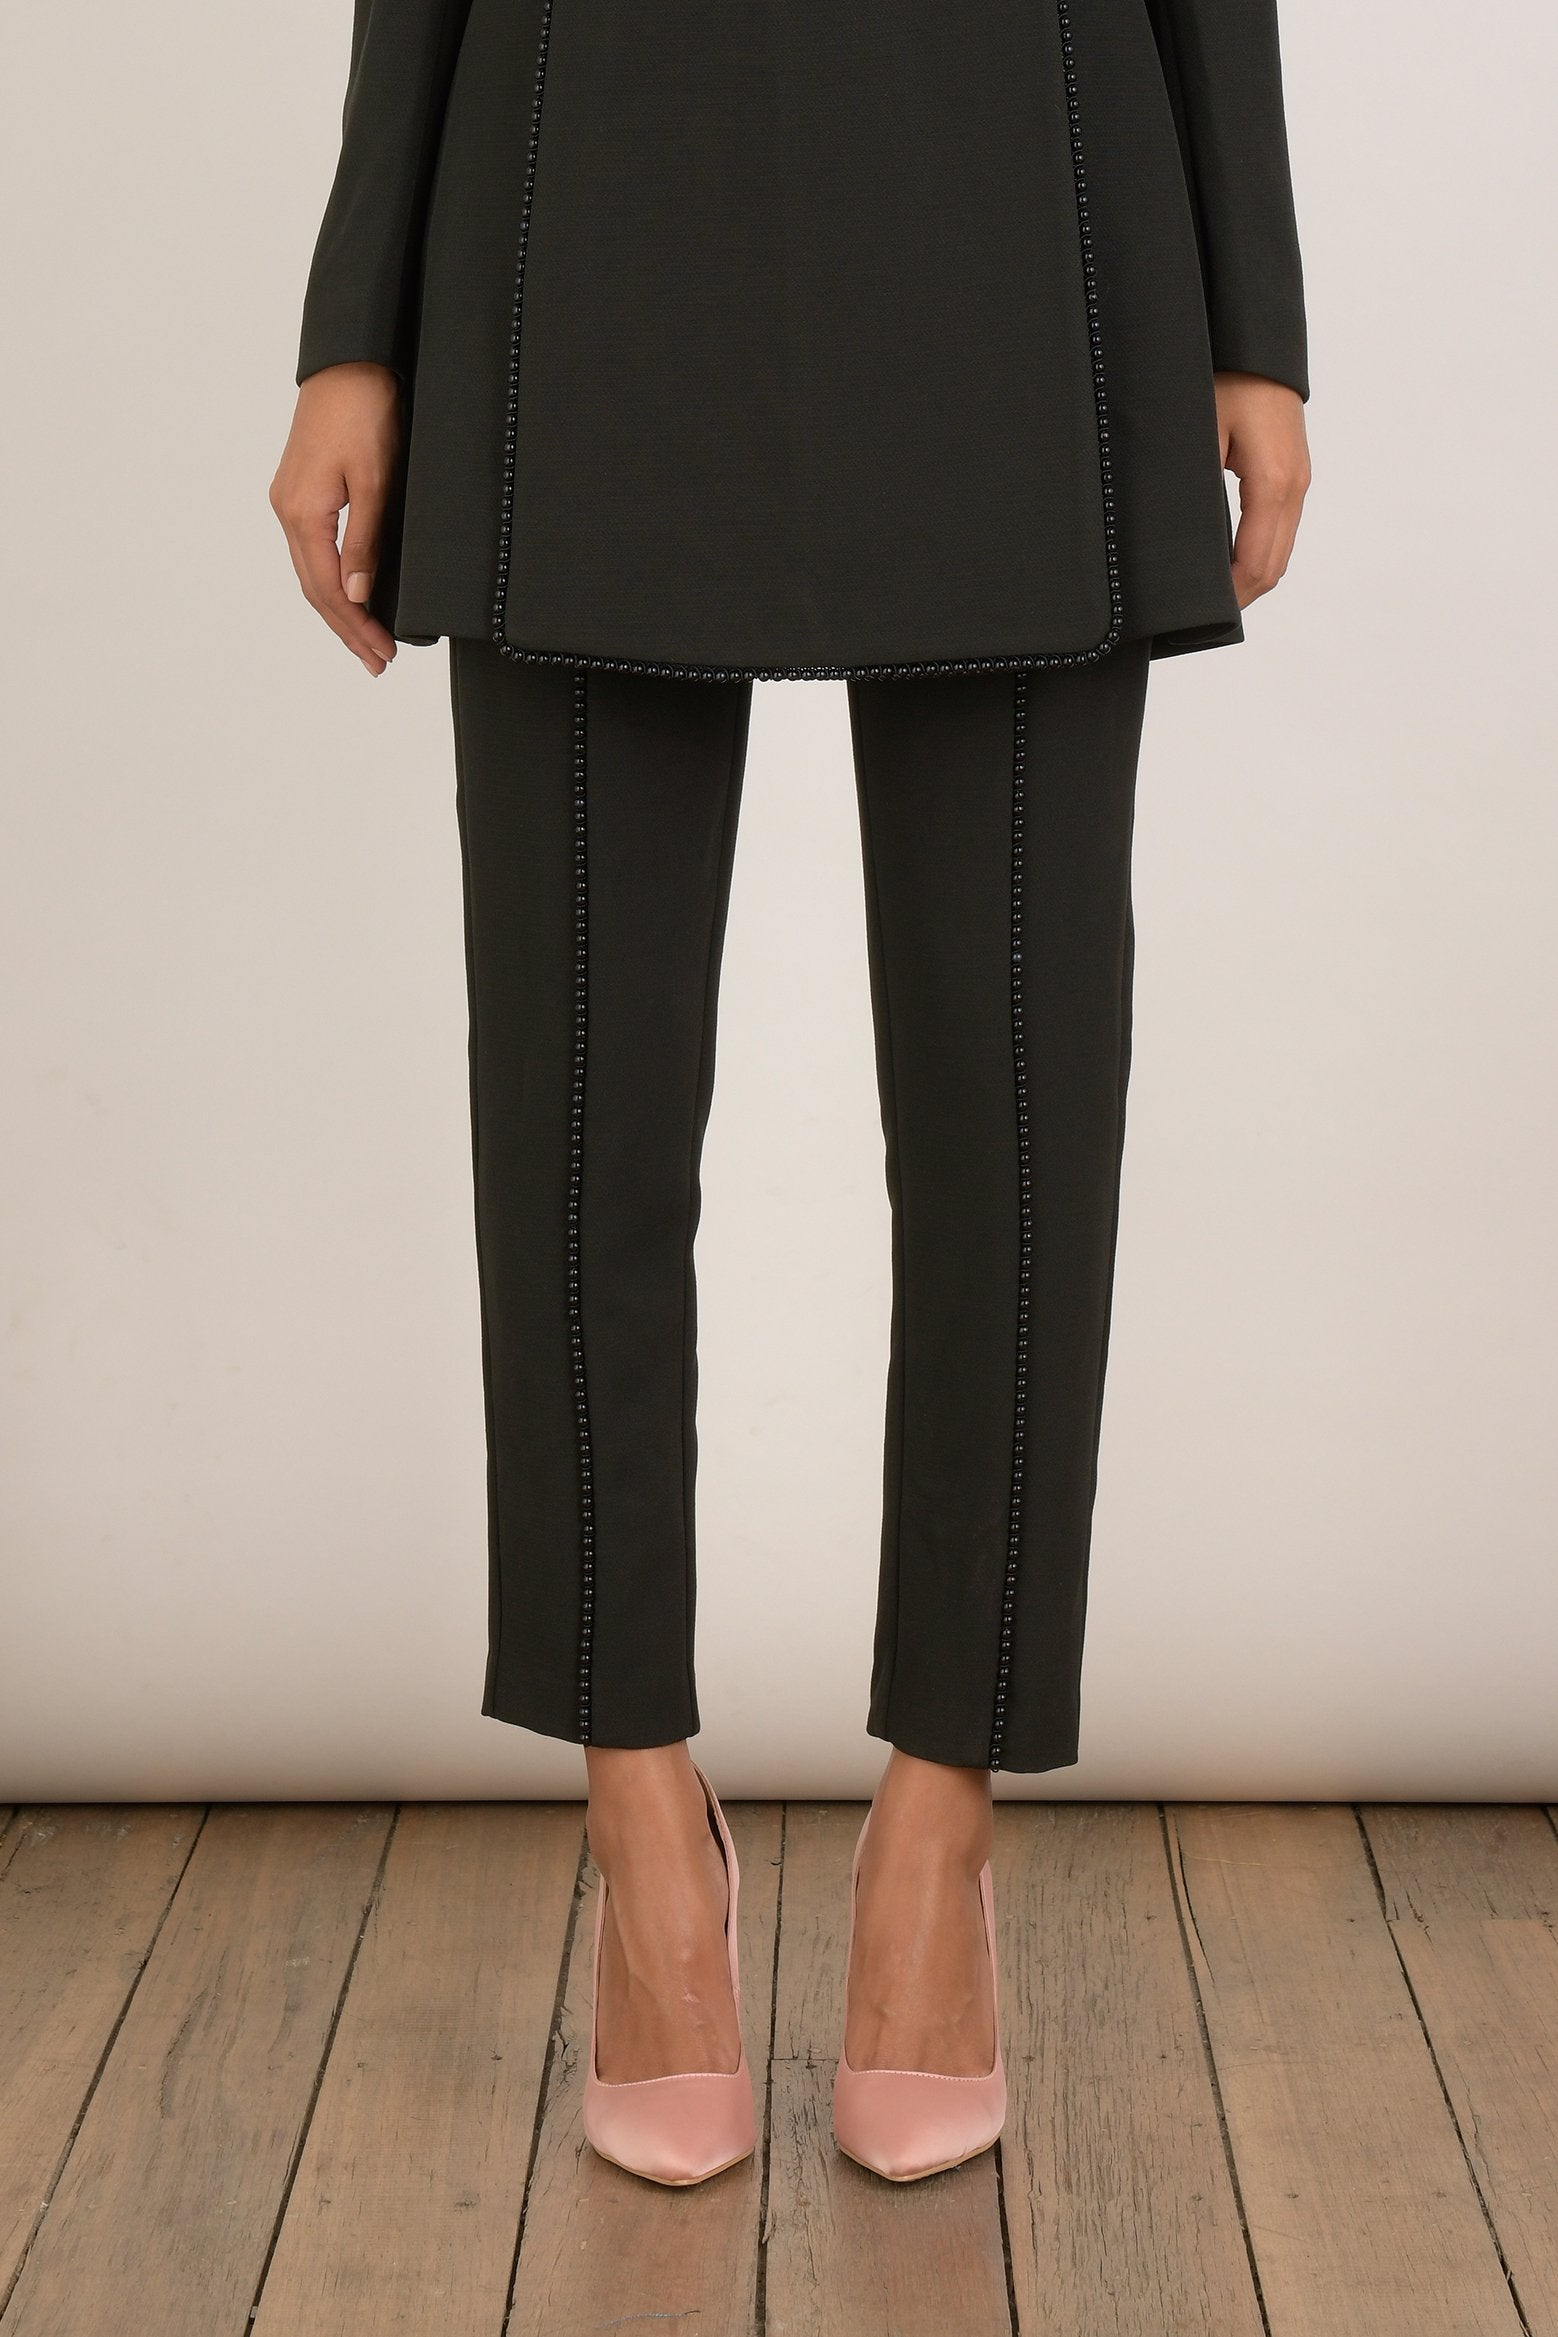 Elliatt Diamond Pant - Stevie May, The East Order, Talulah, Pasduchas, Everly Collective